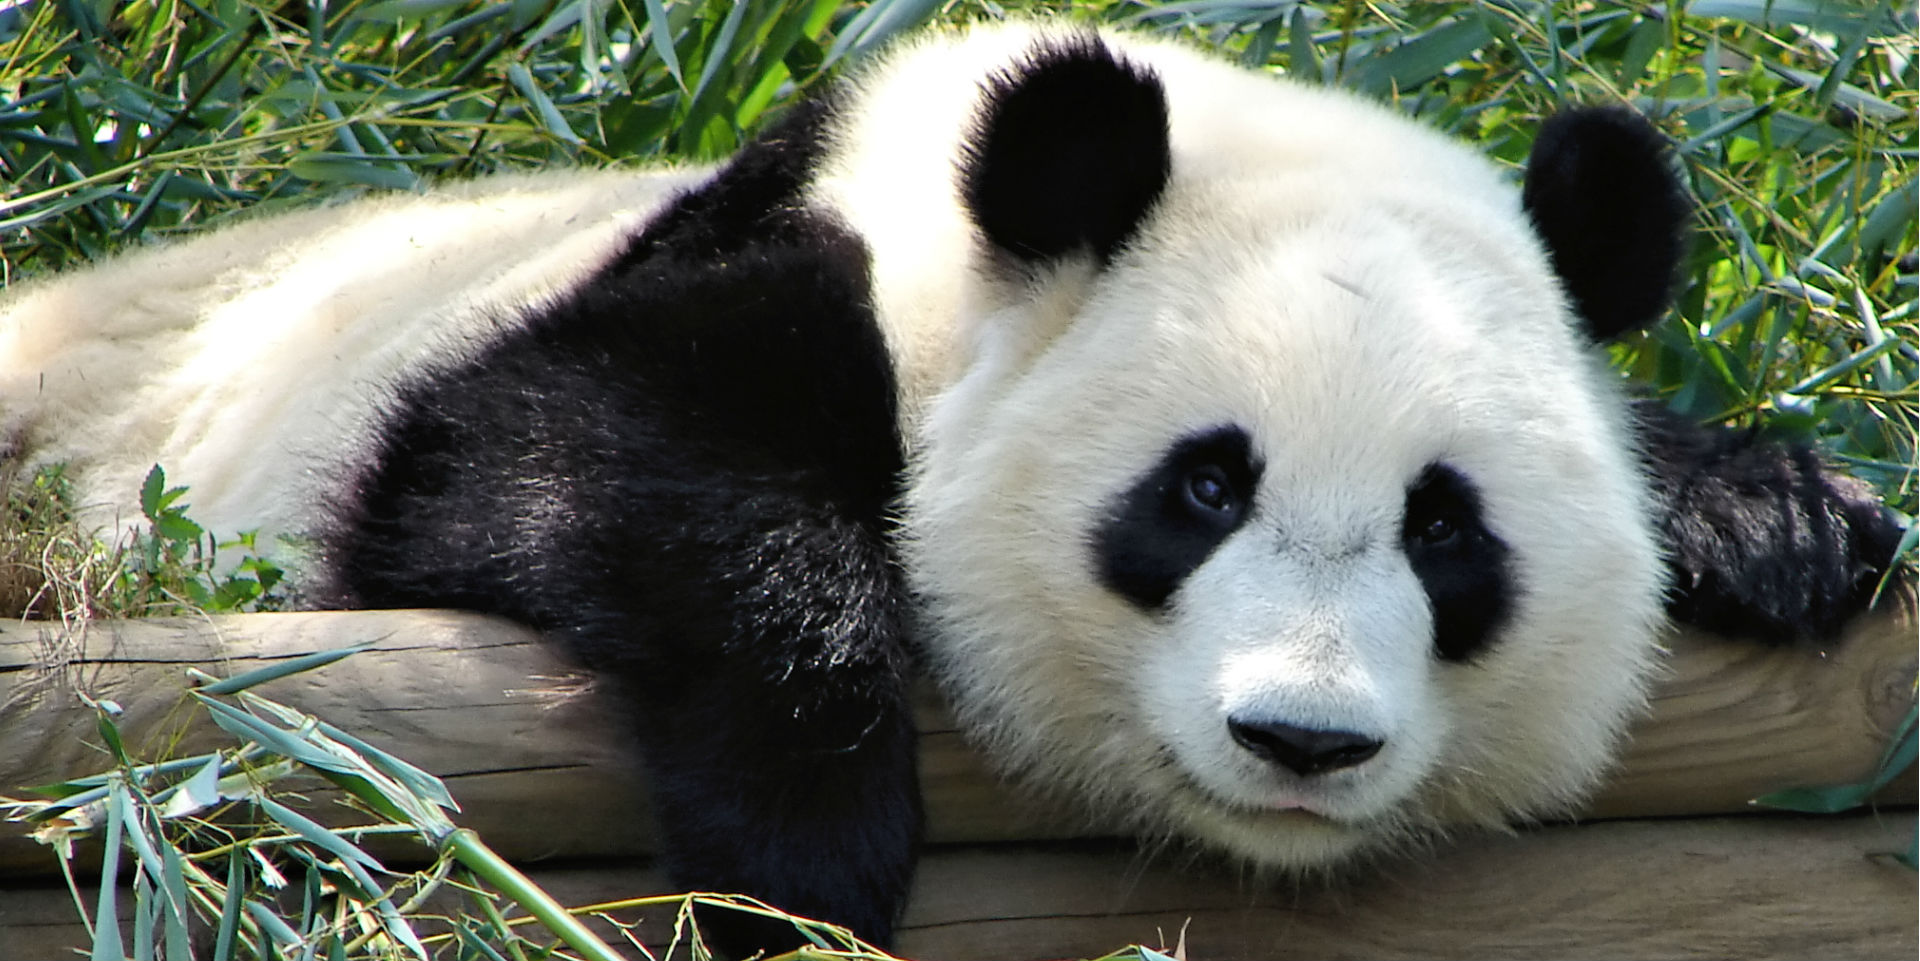 The Unbearable Cuteness of Pandas: My Experience in Chengdu